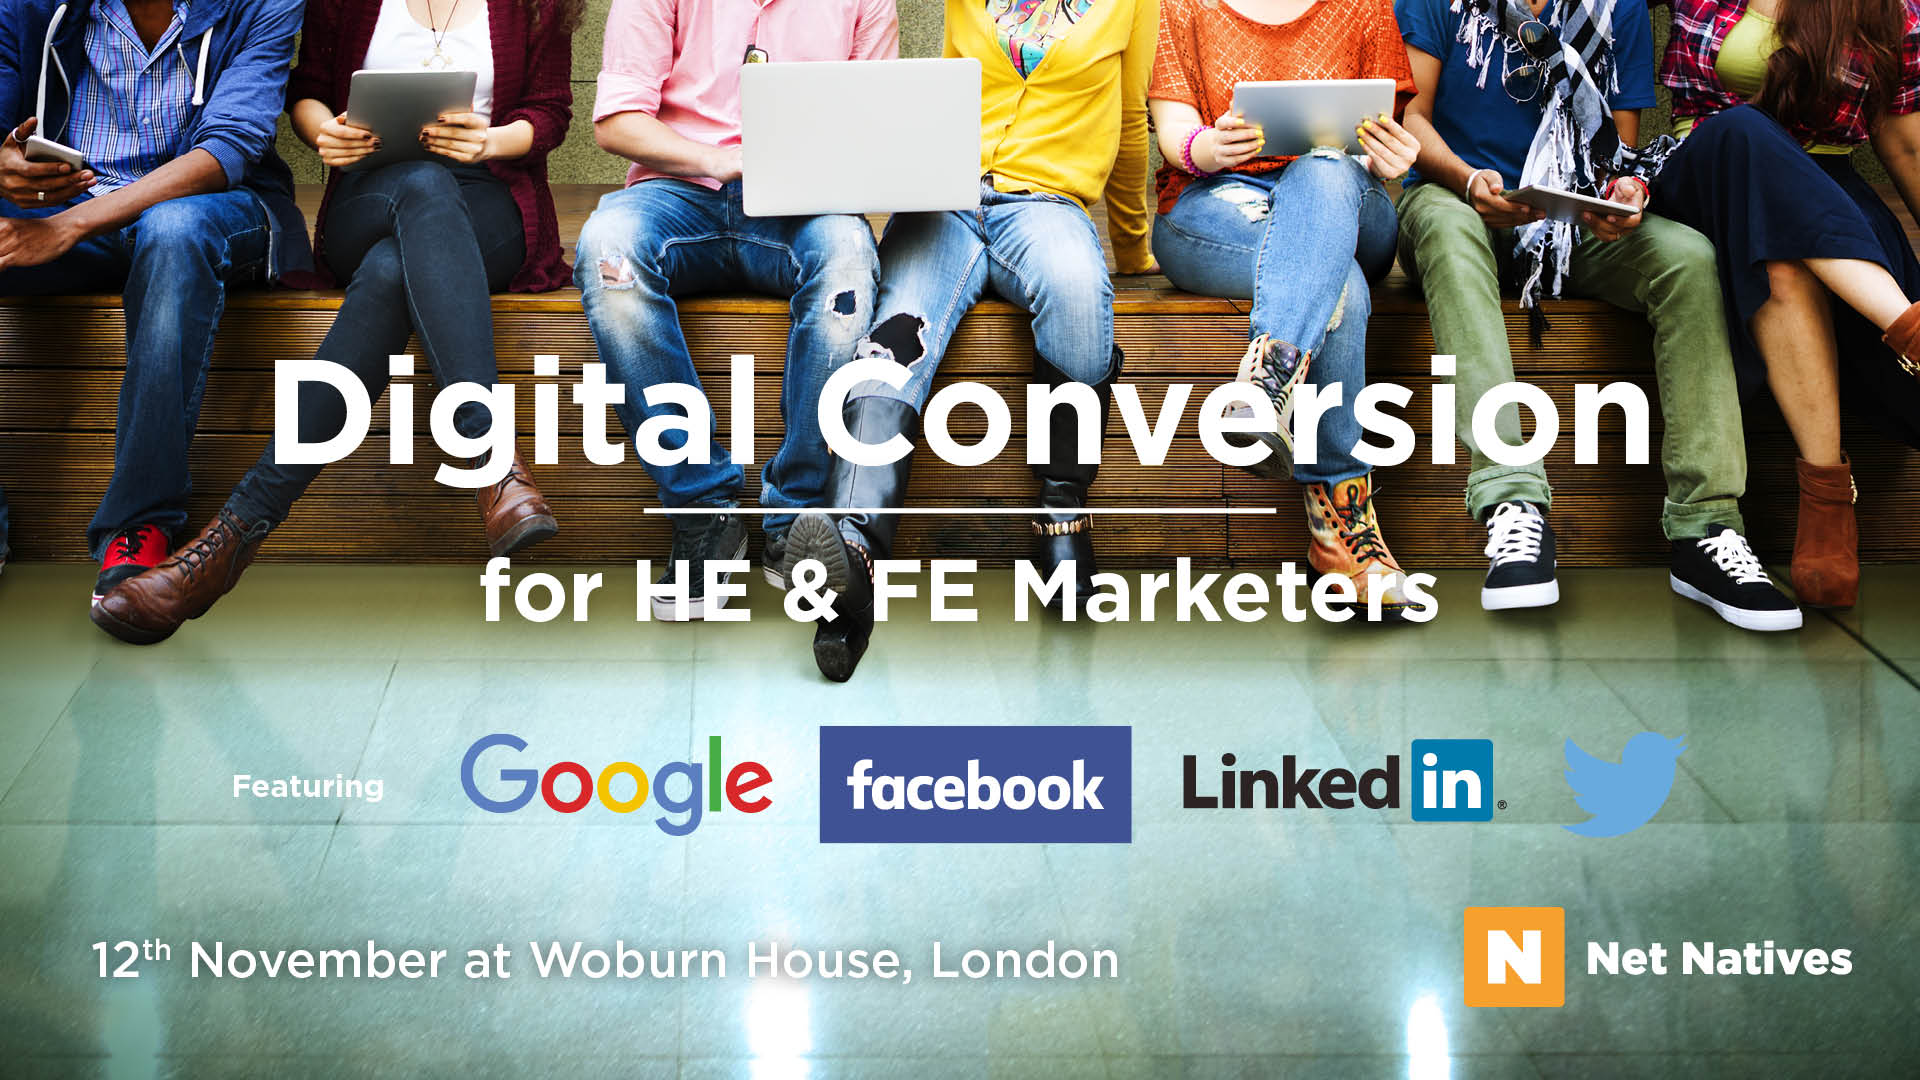 Digital Conversion for HE & FE Marketers